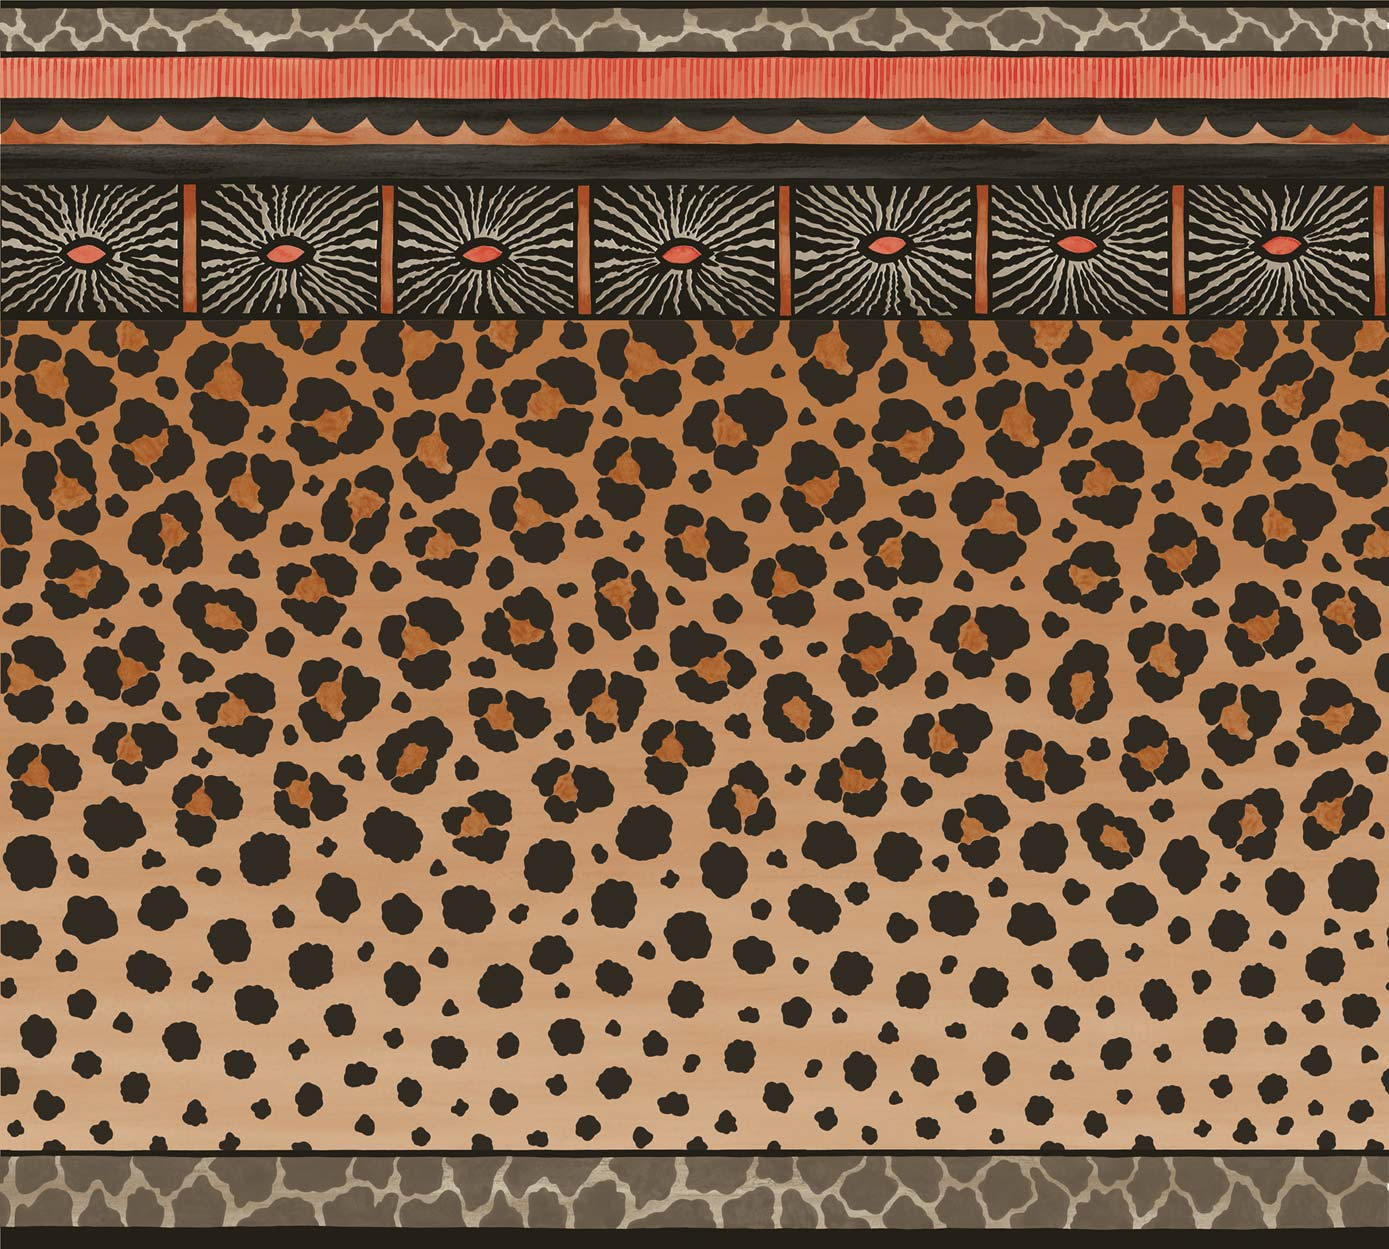 Cole Son Zulu Border Wallpaper 109 13060 1389x1249